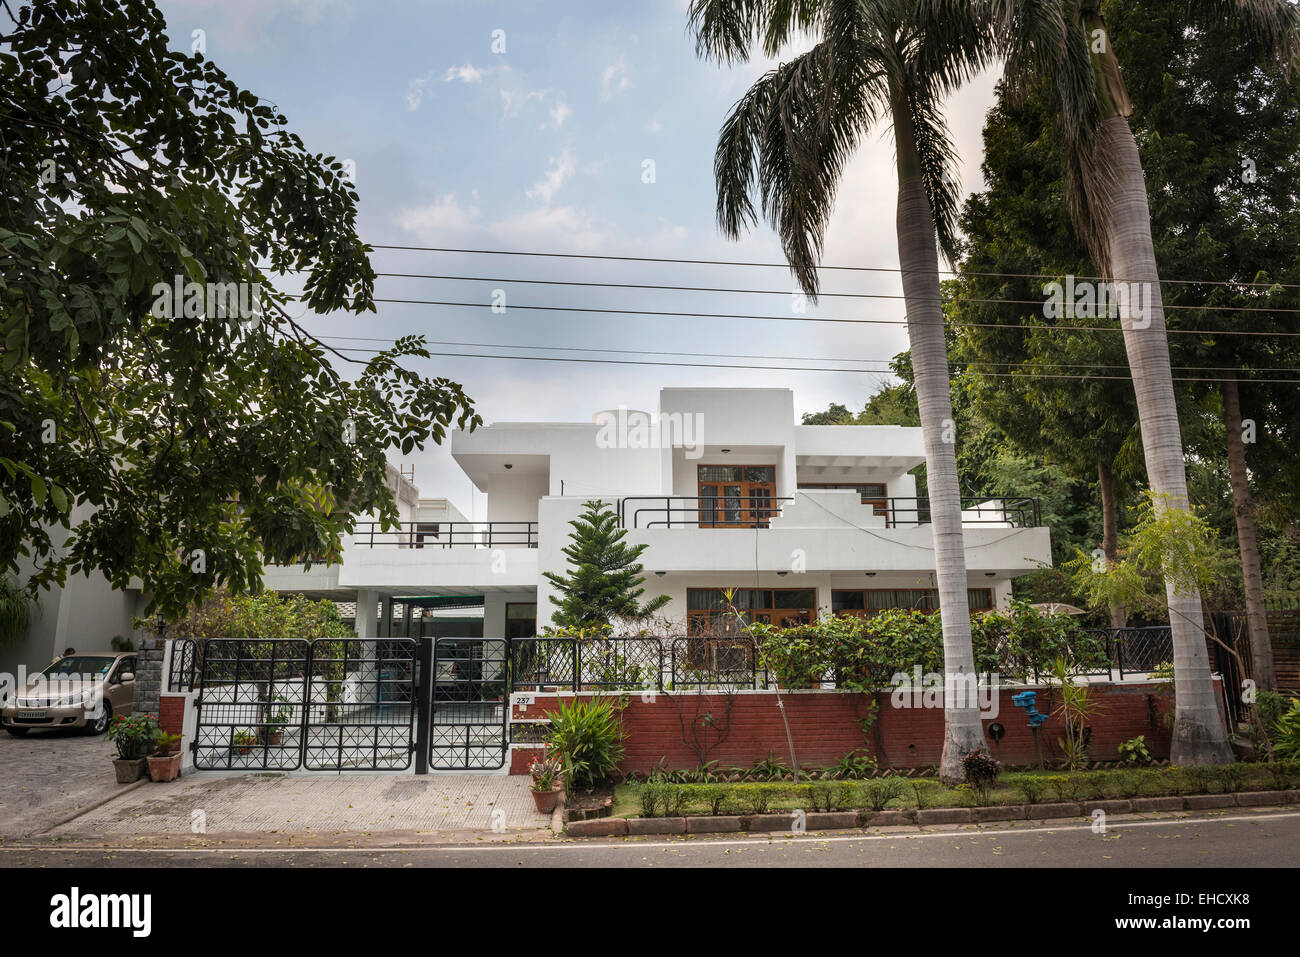 Spacious modernist house in Chandigarh, Punjab, India - Stock Image